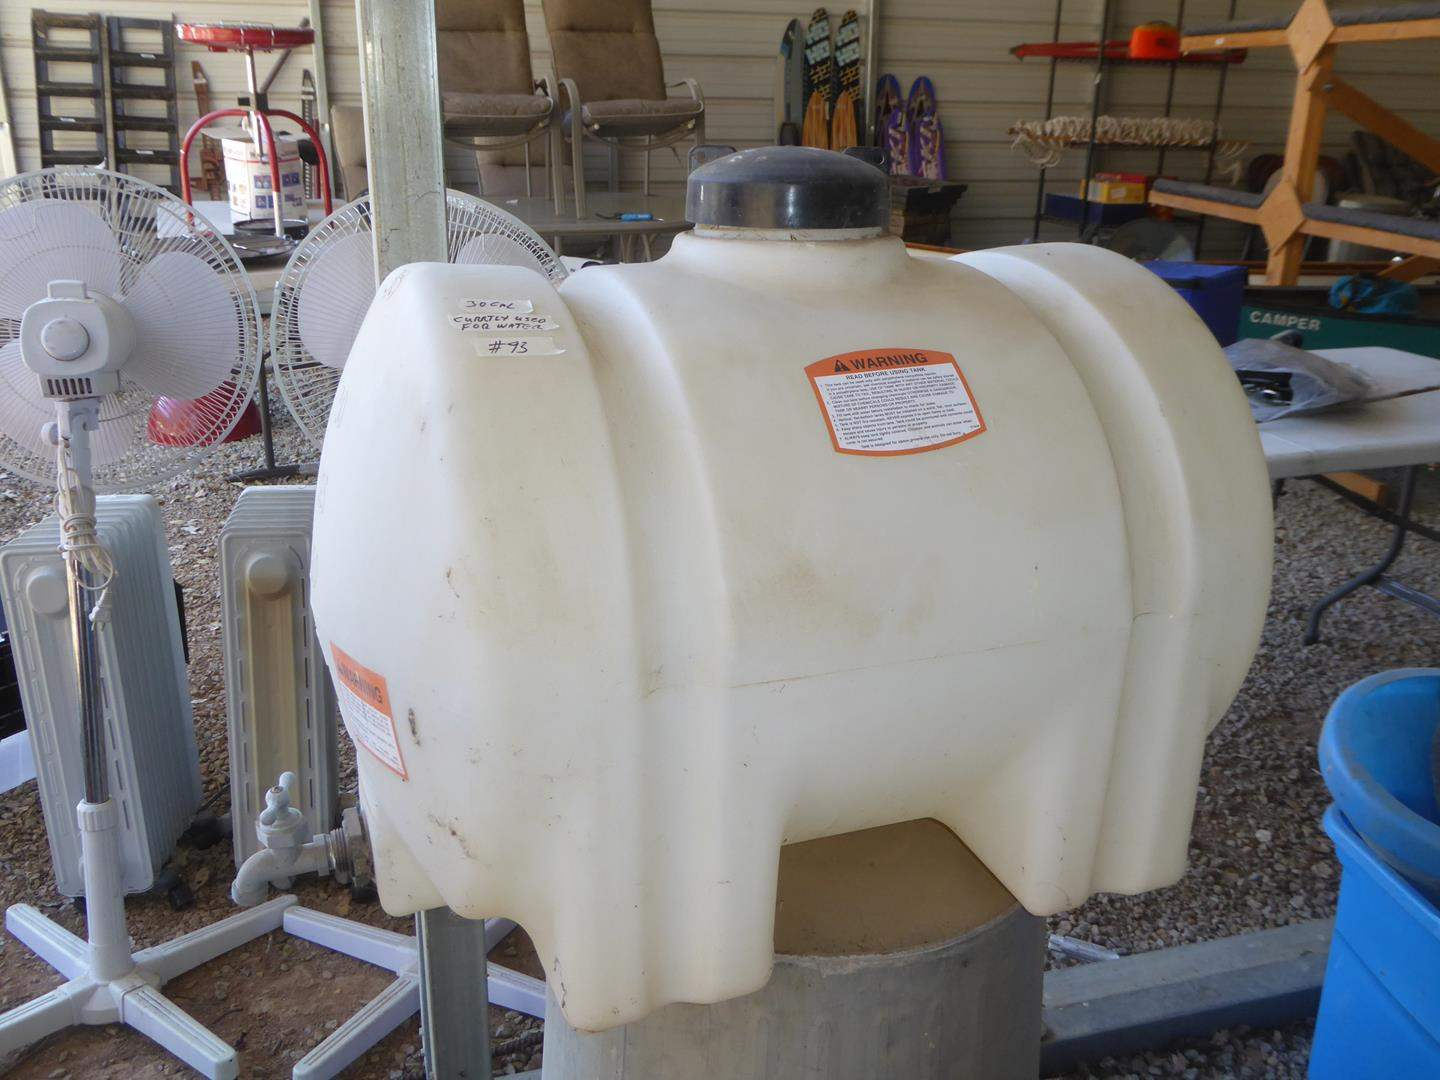 Lot # 93 - 35 Gallon Tank - Currently Used For Water (main image)